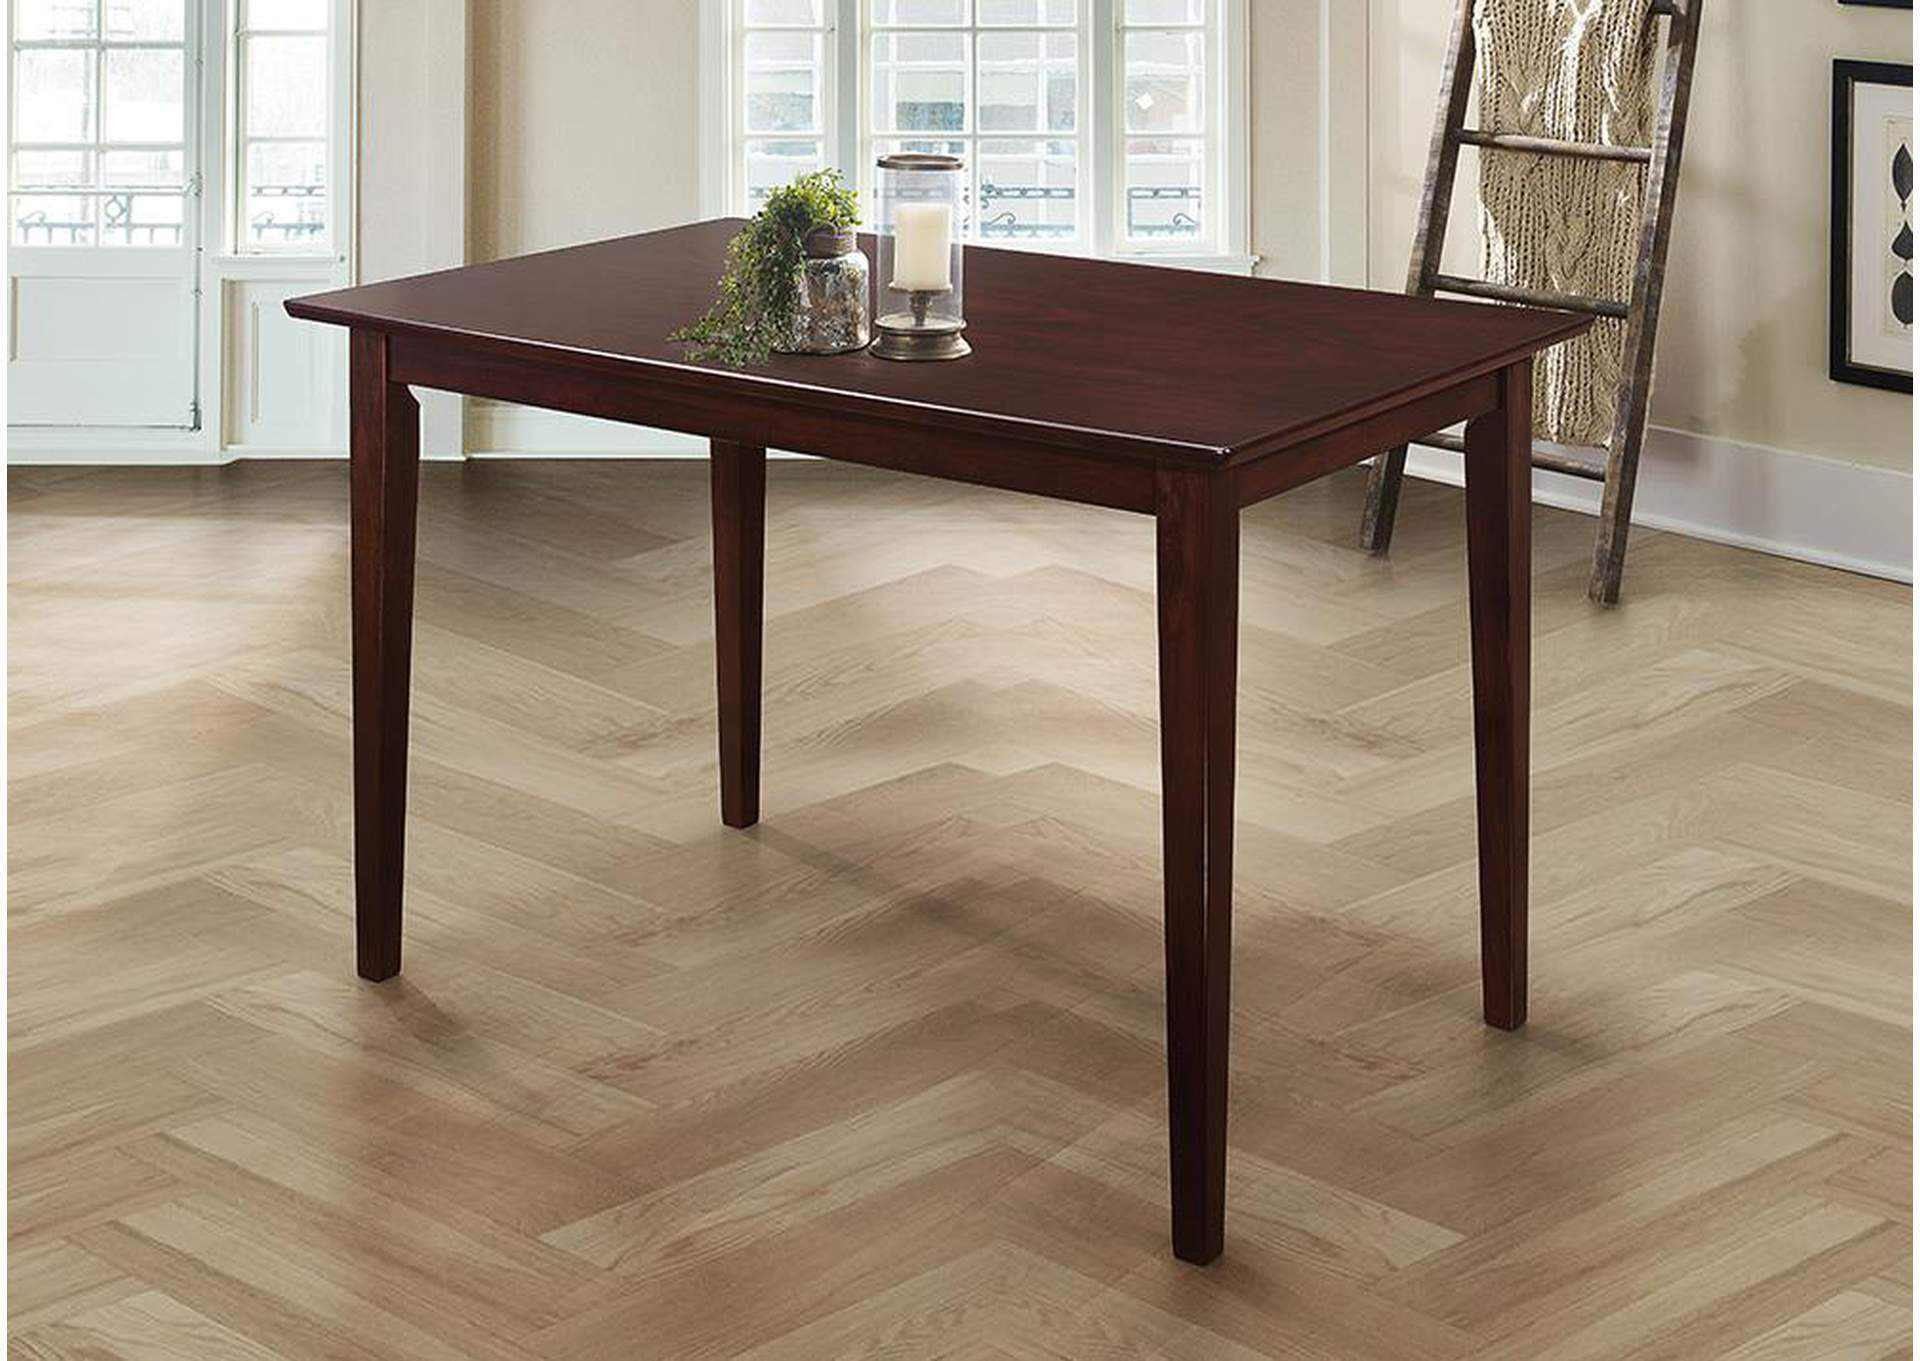 Cappuccino Clayton Rectangular Dining Table,Coaster Furniture